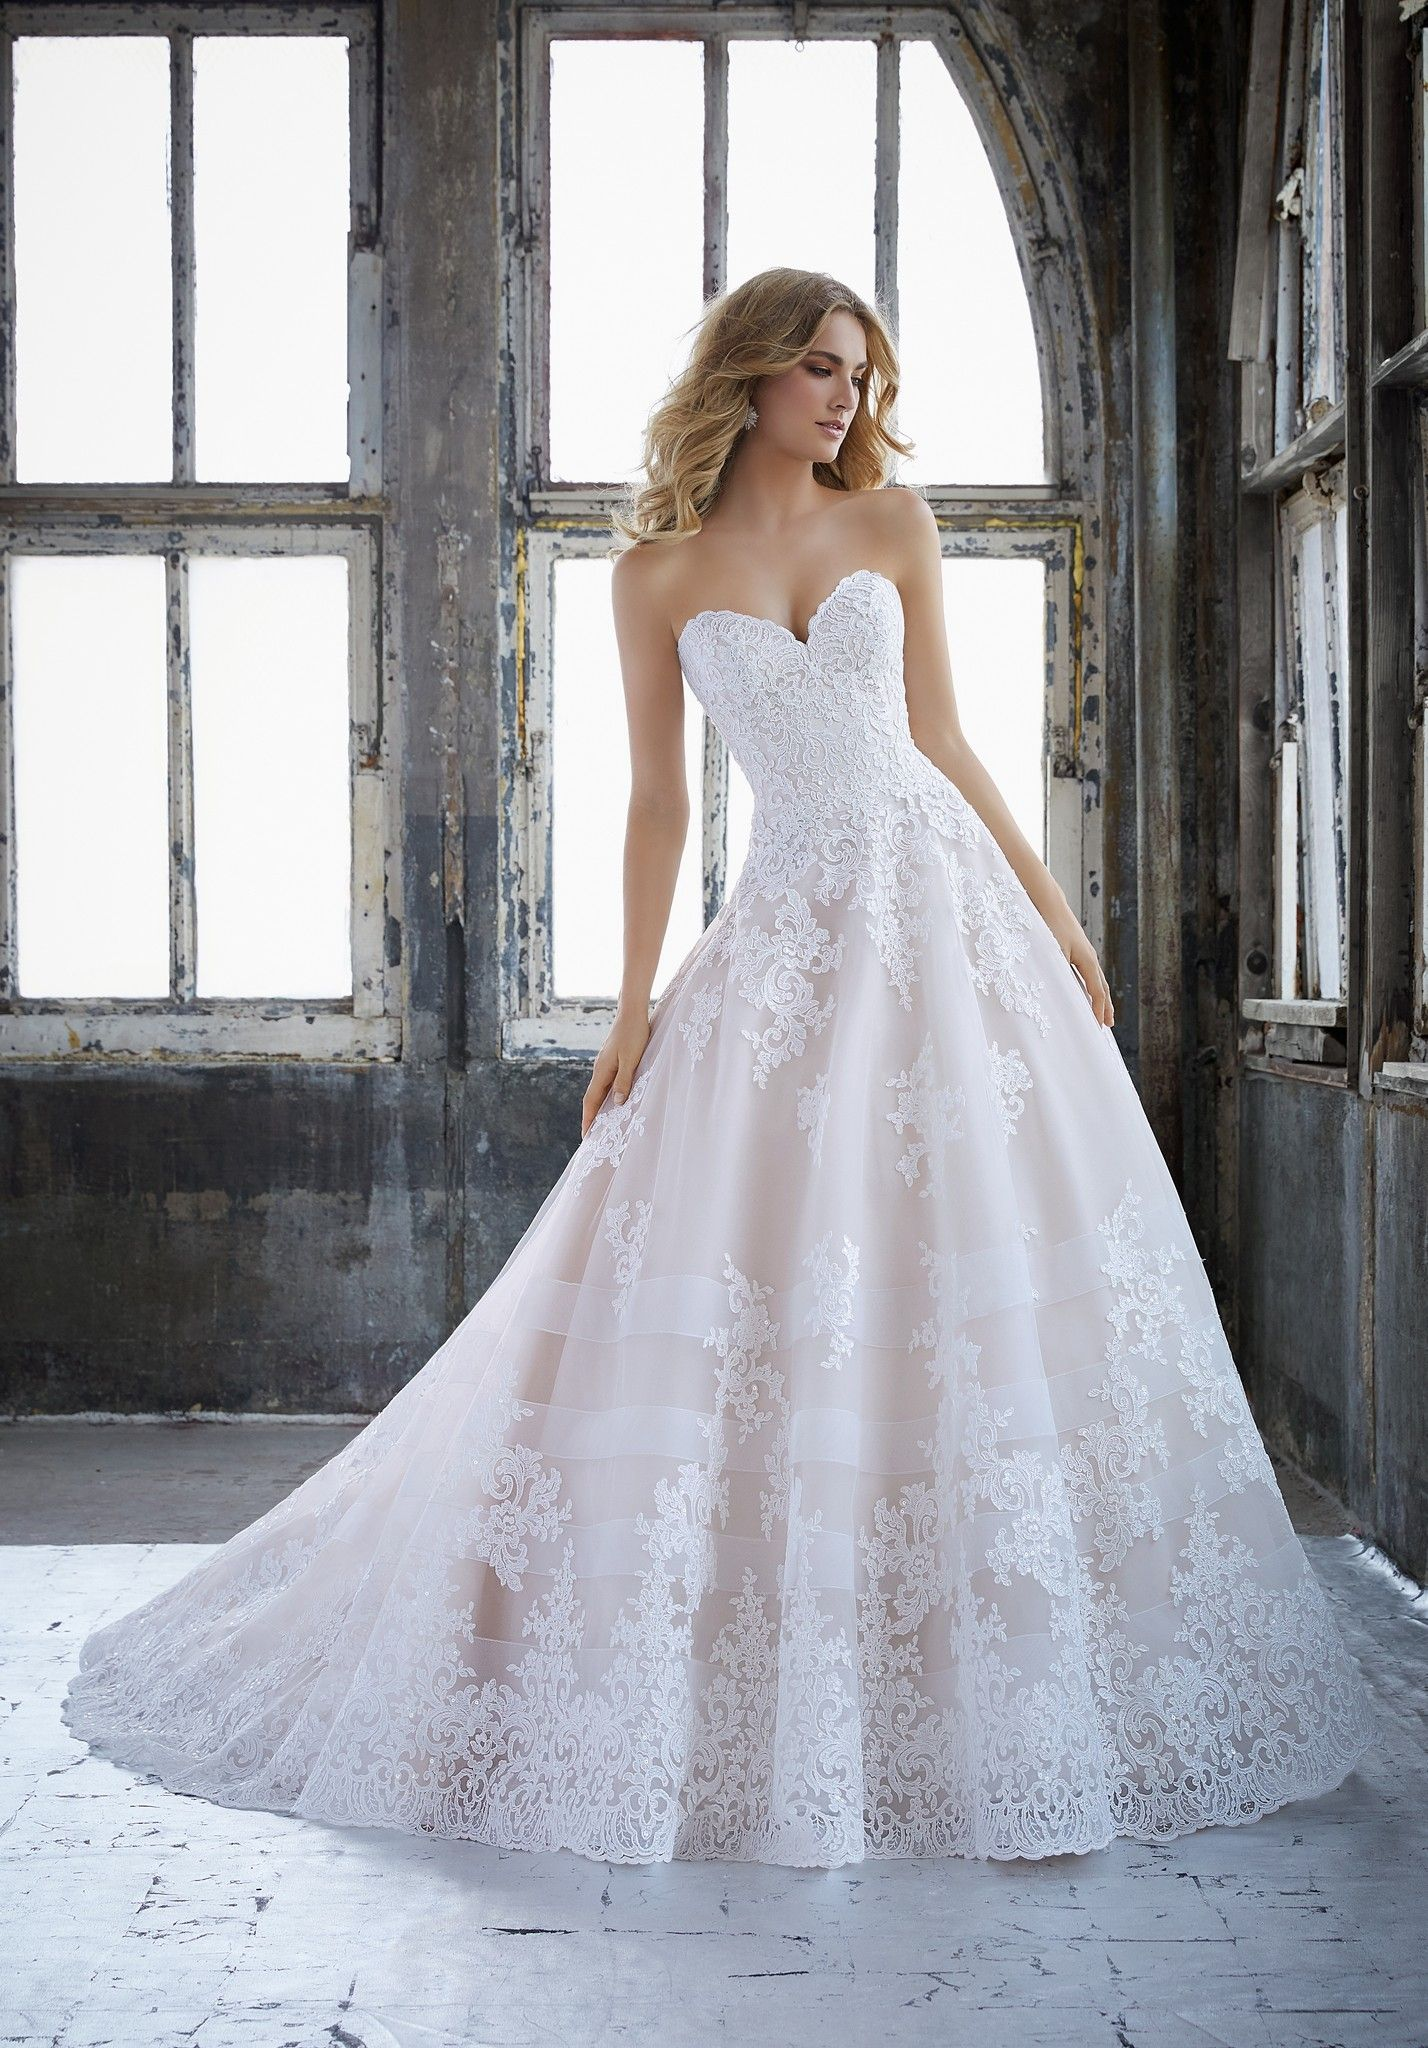 Kimberley wedding dress princess ballgown featuring a sweetheart